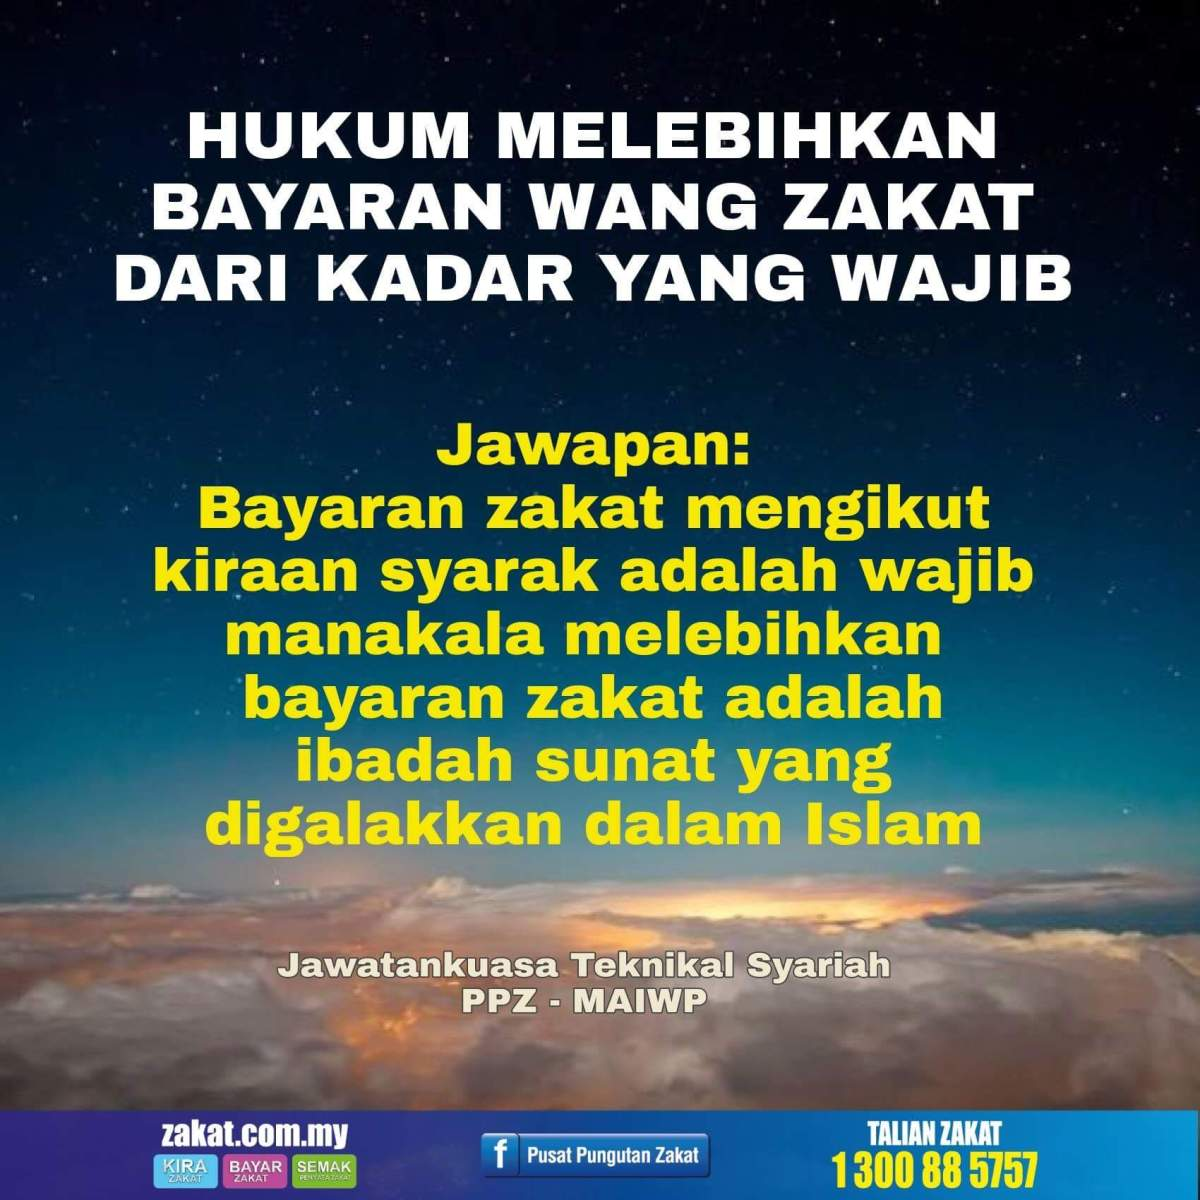 Overpaying of Zakat from the RequiredAmount.